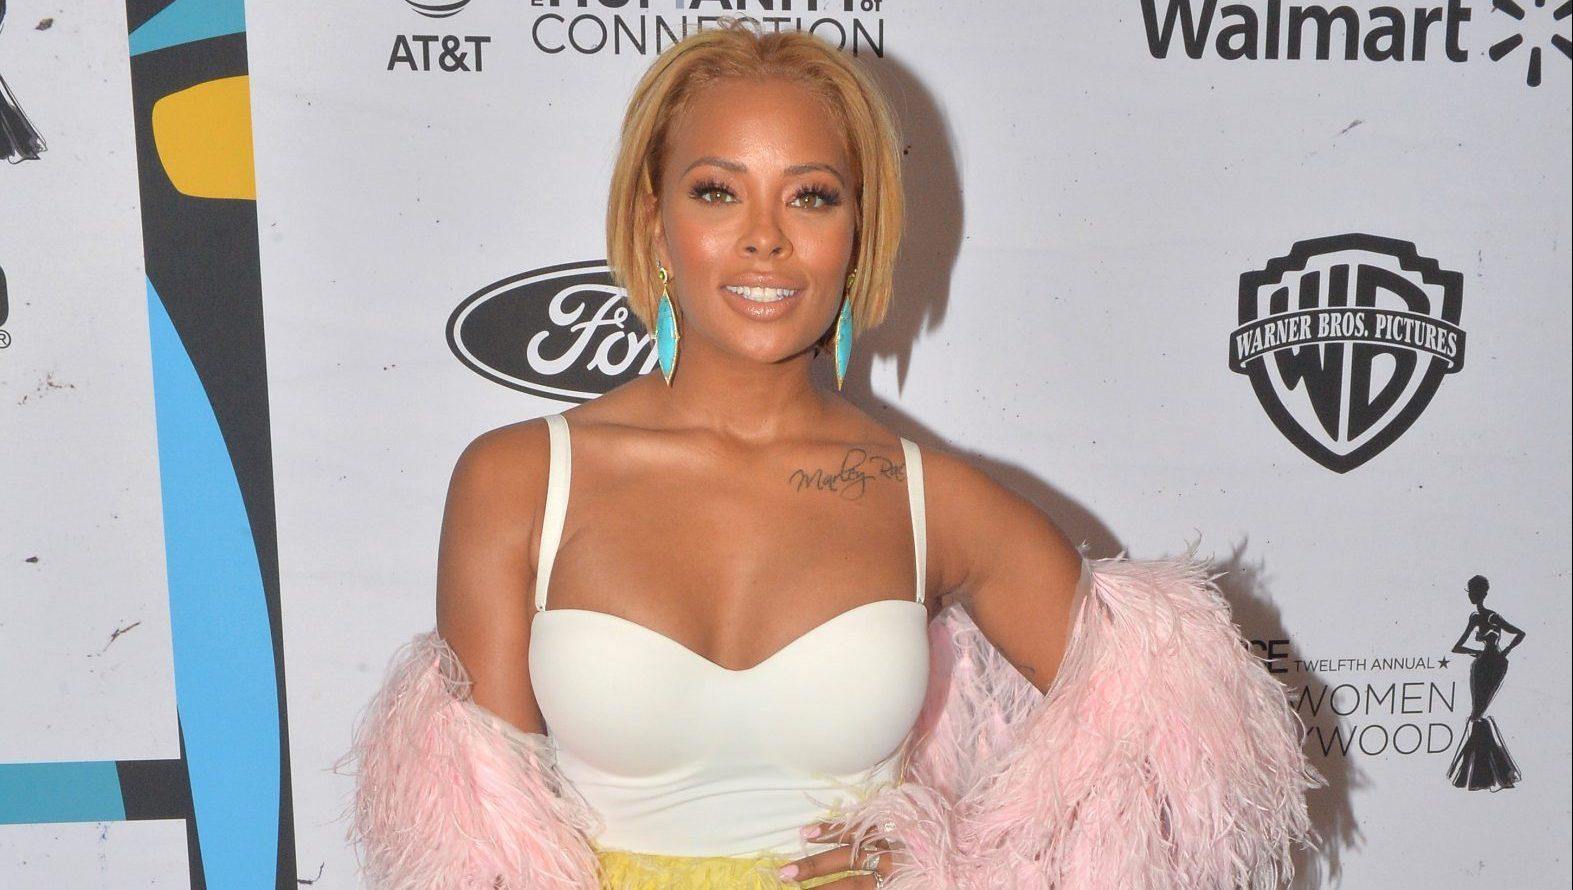 Eva Marcille Shares A Video Featuring A Scene From A Movie She's Been A Part Of - Check It Out Here